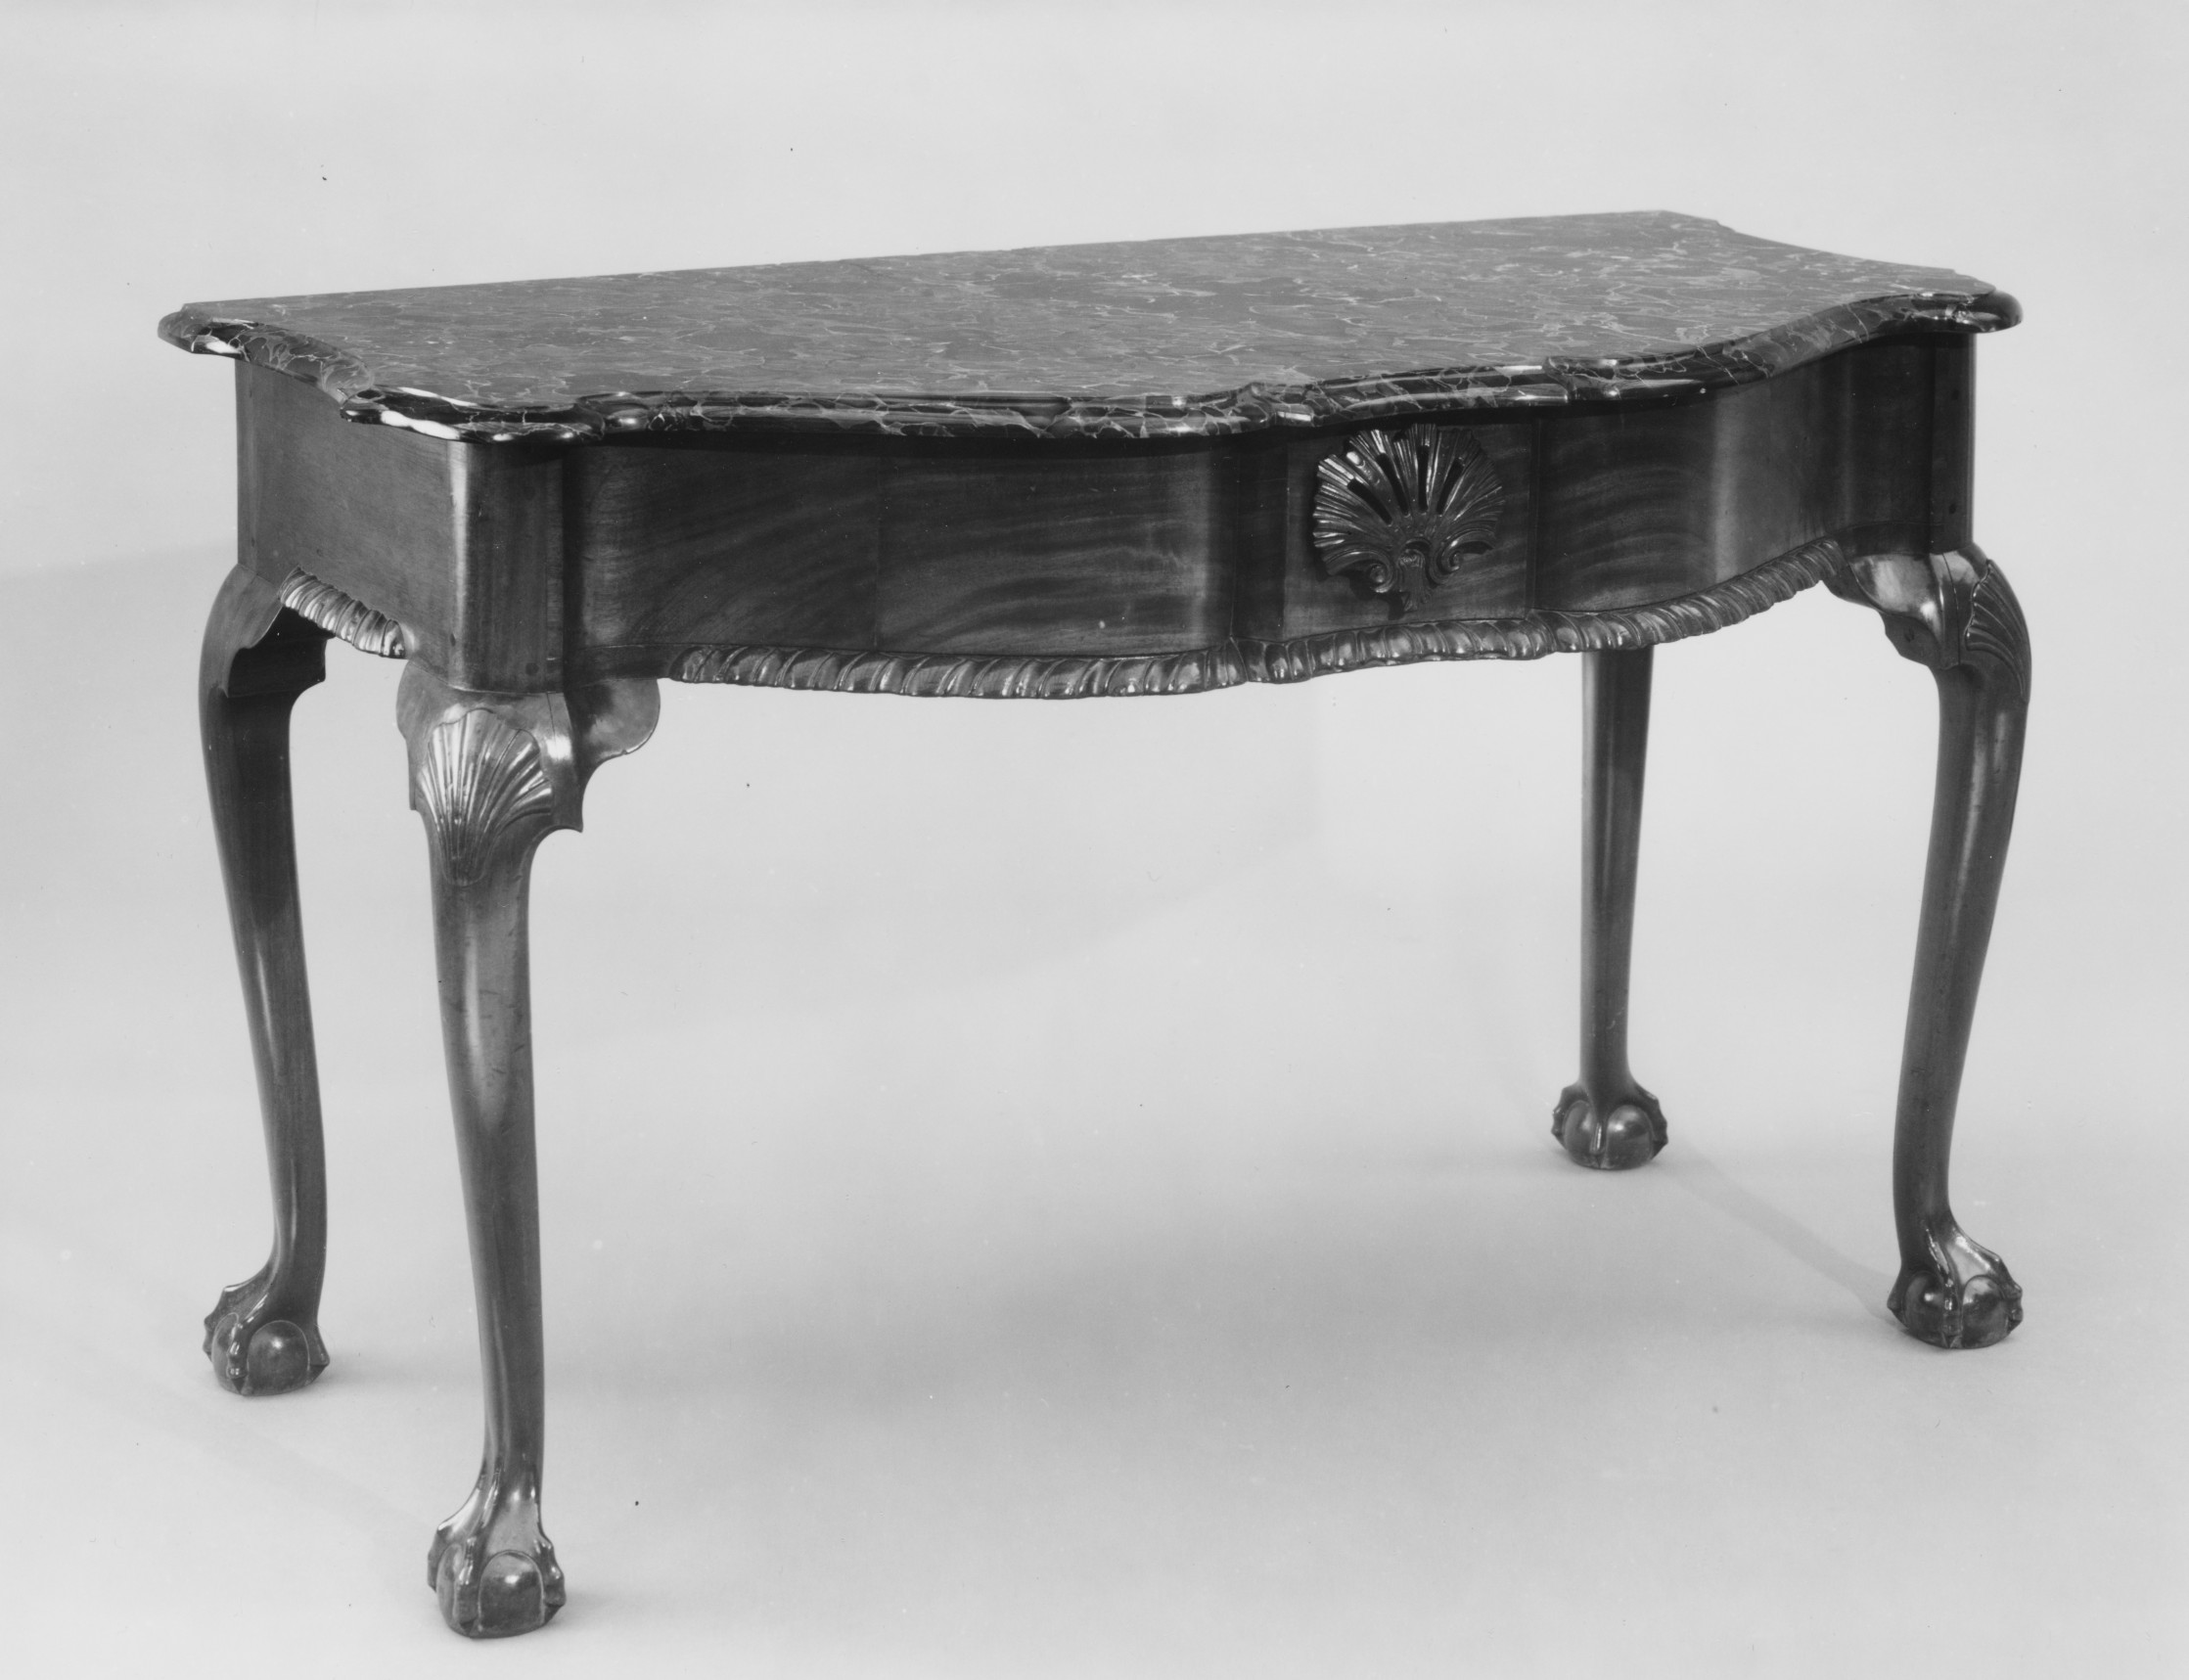 File Marble slab table MET Wikimedia mons